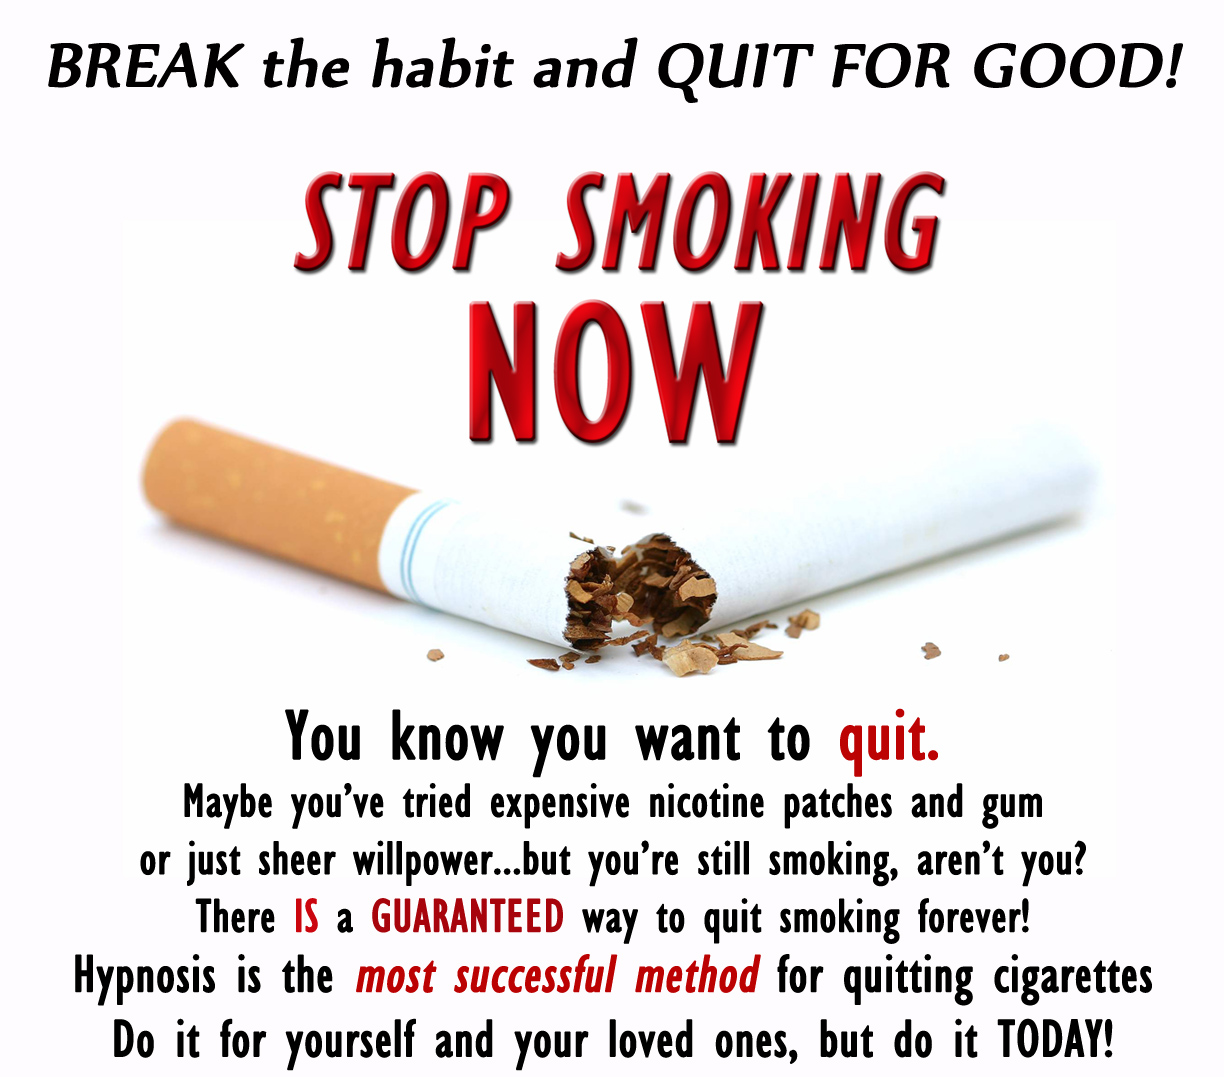 Hypnosis to Quit Smoking - The Secret to Successful Stop Smoking